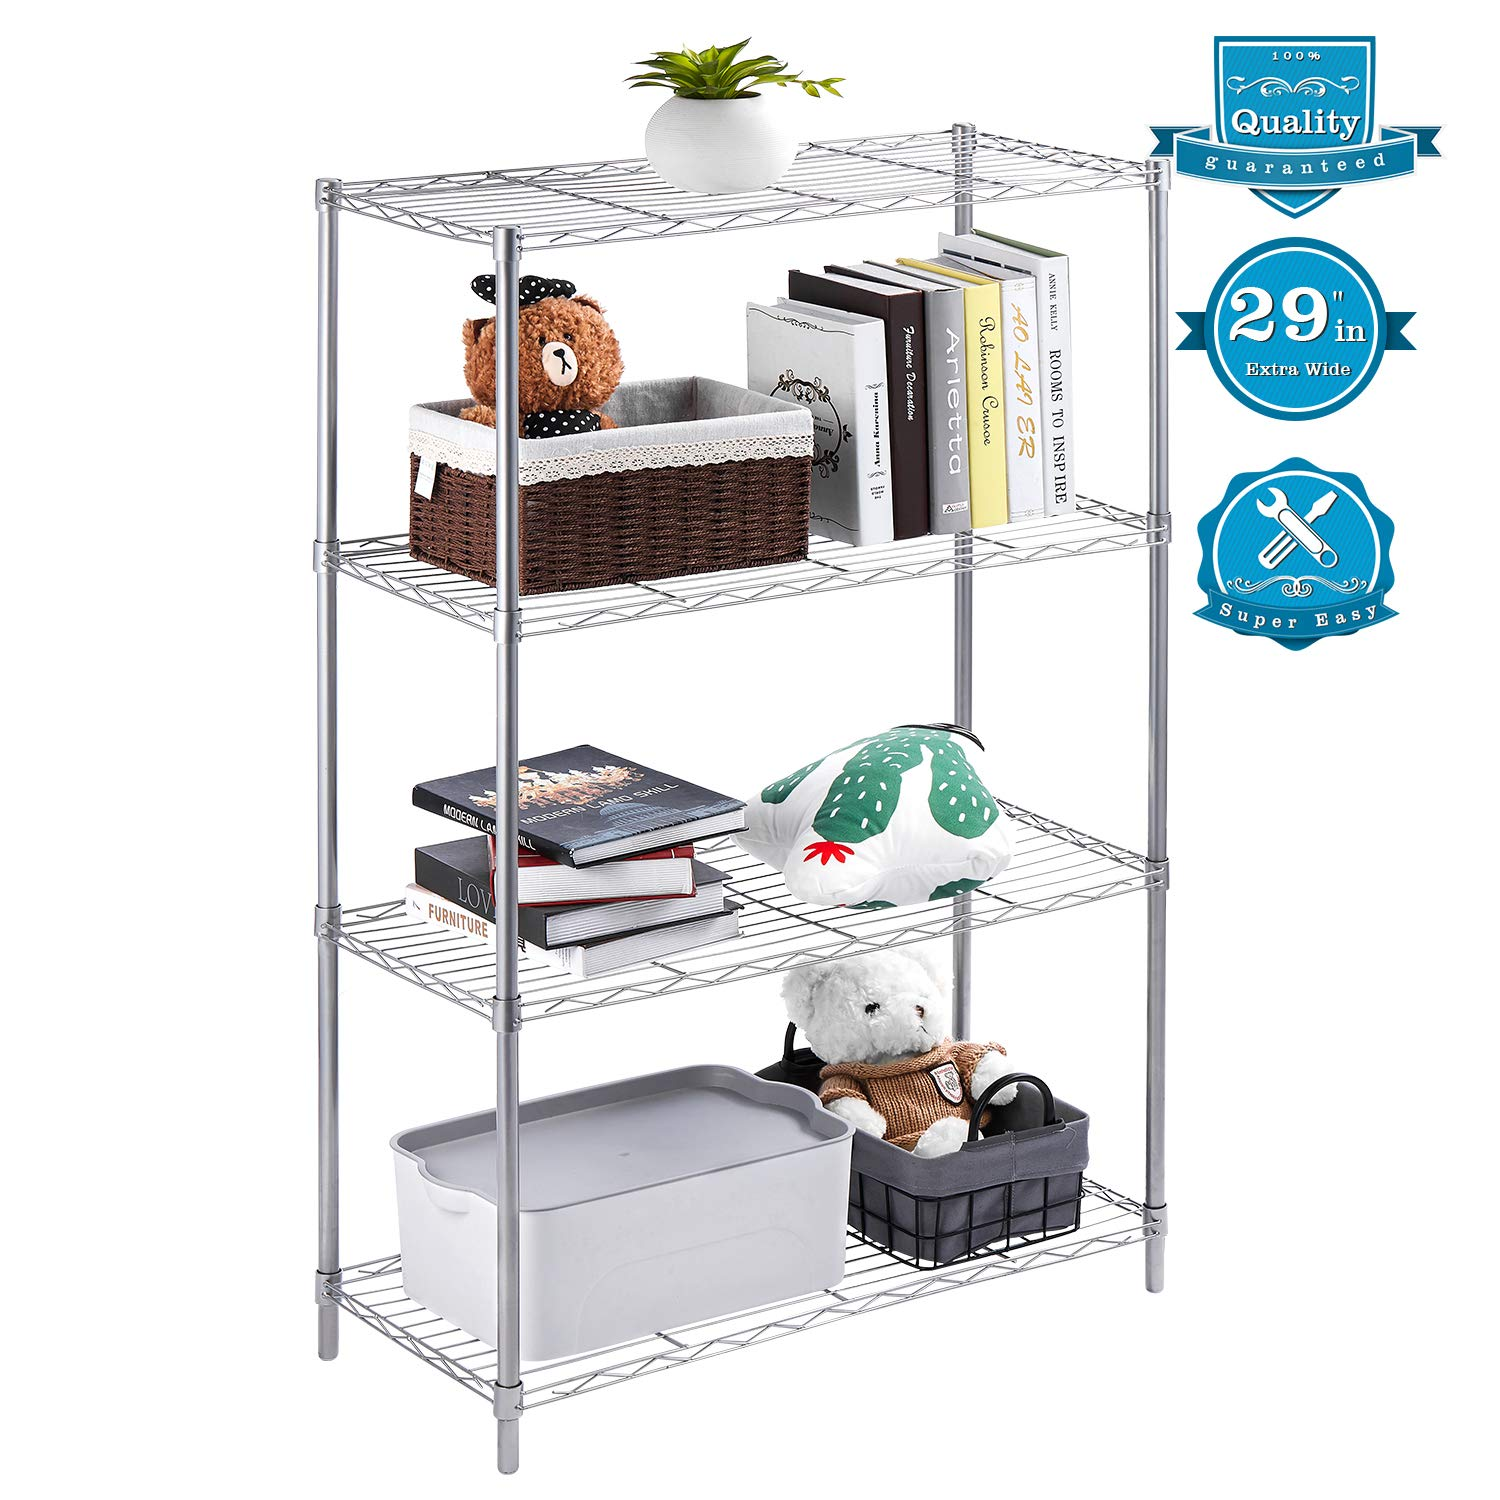 AOOU Shelf 4-Tier Shelving Unit, 29'' Extra Wide Wire Shelving for Large Storage, Classic Metal Steel Storage Rack Sturdy for use in Pantry, Living Room, Kitchen, Garage, Coated with Silver